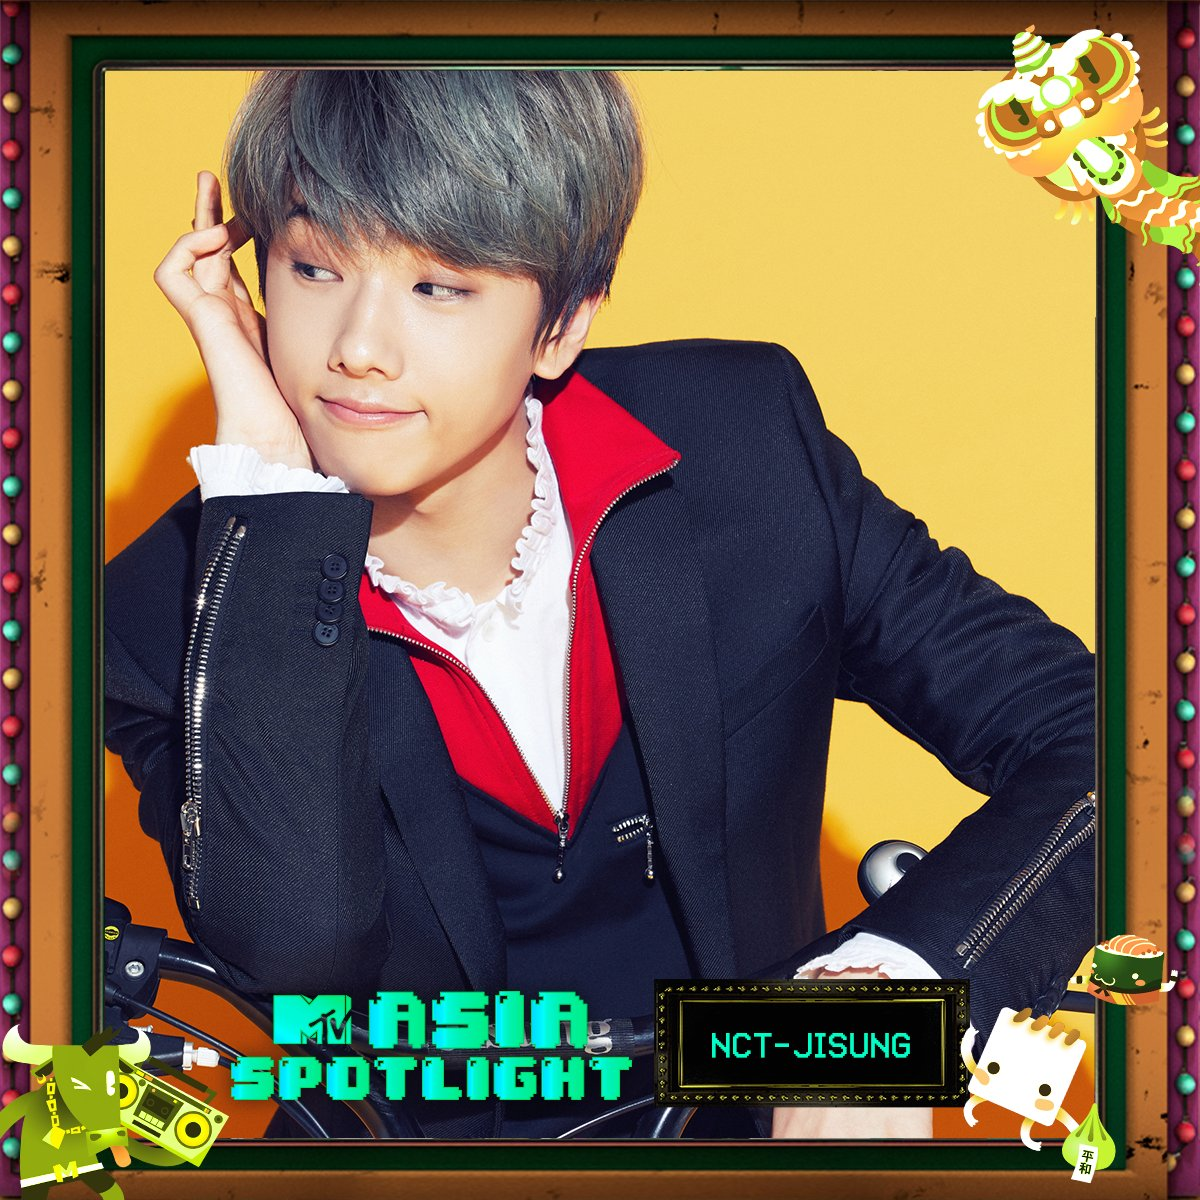 We wonder what the youngest member of  has to share…catch 's full cl#JISUNGip over on !   2018https://t.co/1bGMJvRJ0s#MTVAsiaSpotlight#NCT#NCT2018